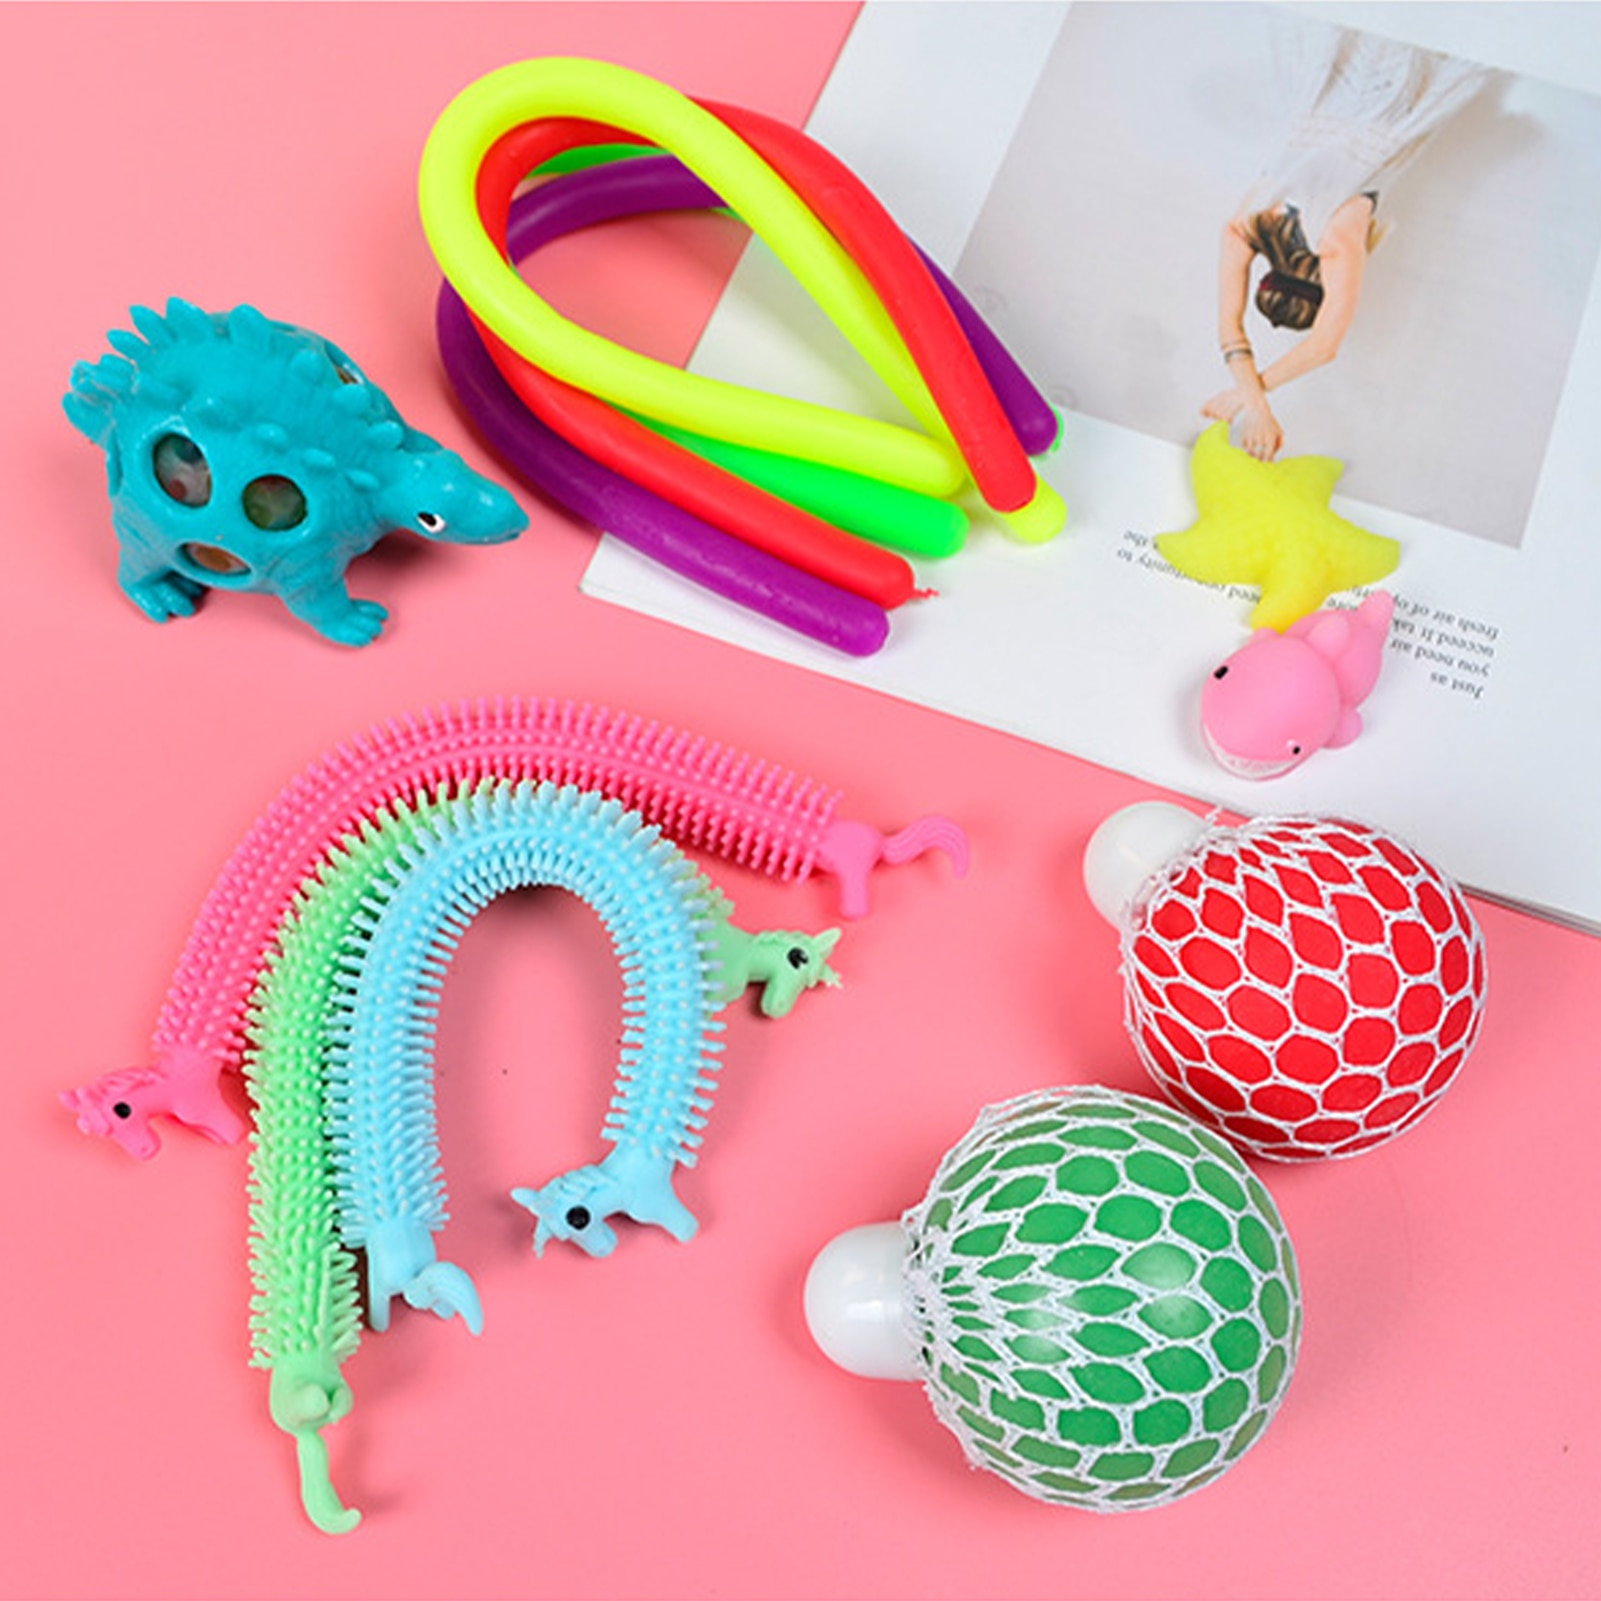 22 IN 1 Portable Fidget Sensory Toys Set Lightweight Pressure Relief Flexibility Elasticity Toy Ball for Children's Kids Adults enlarge